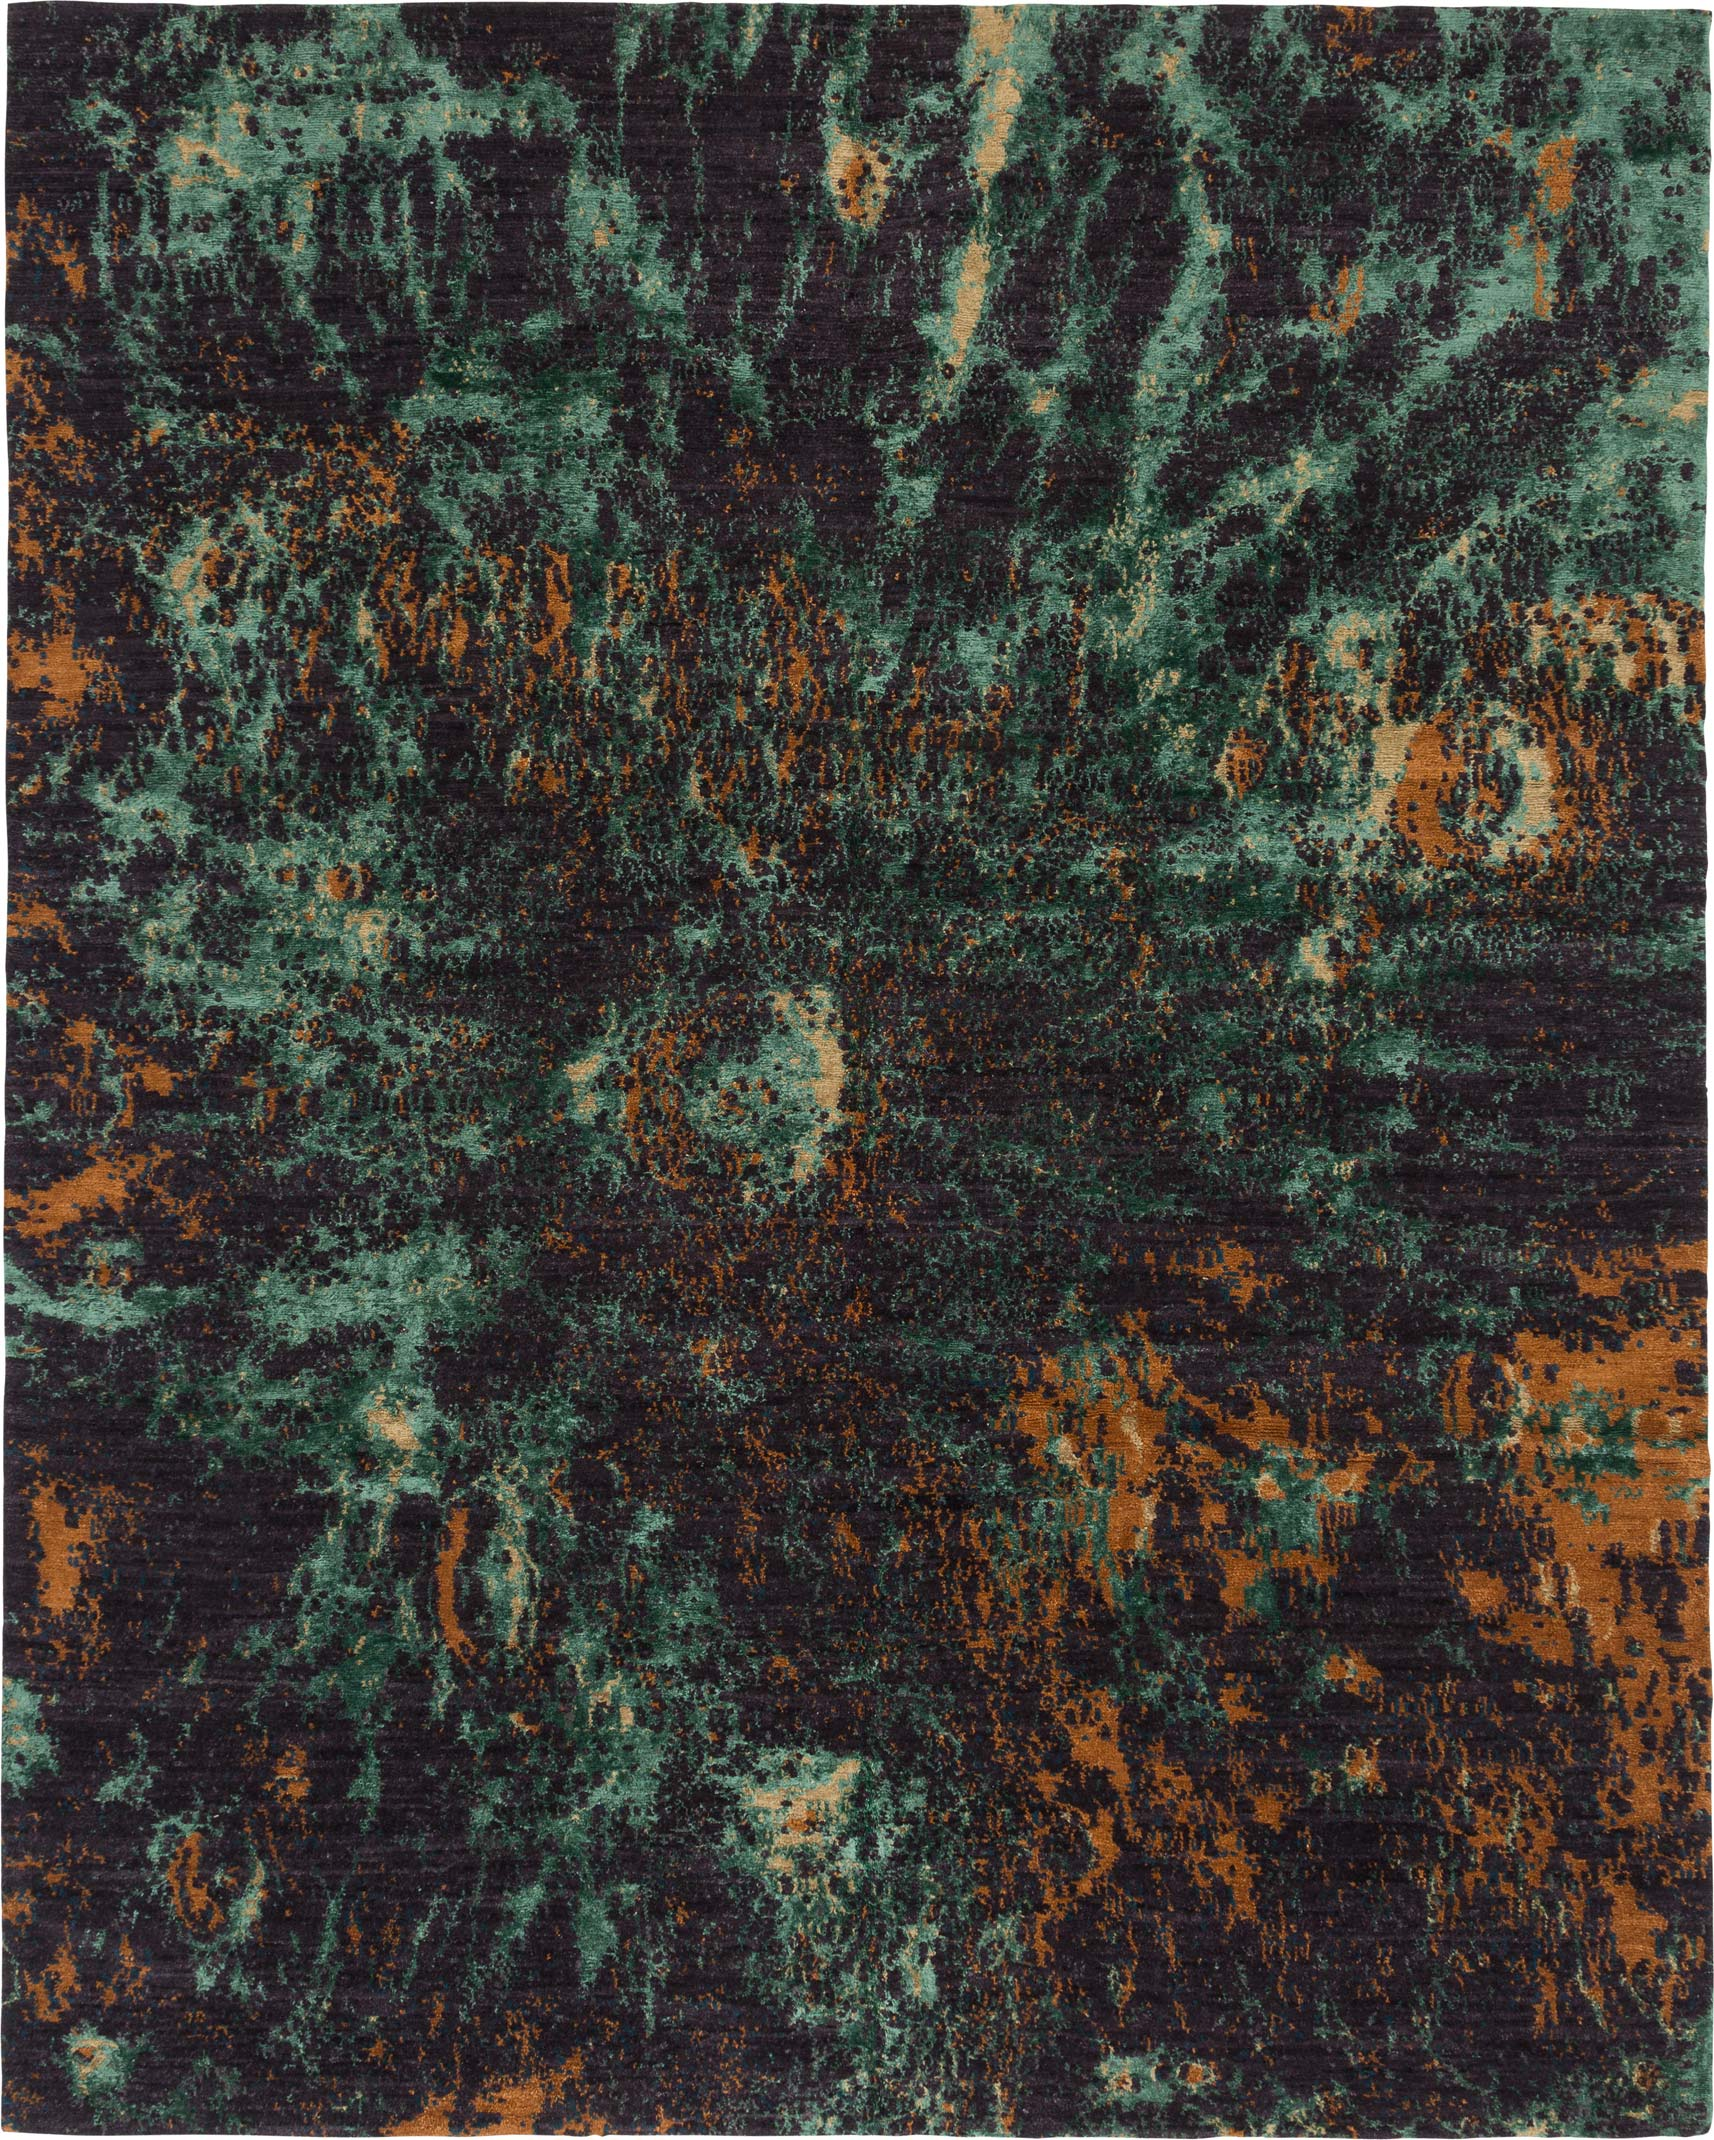 Moonscape shown in colour Malachite by Tufenkian | Image courtesy of Tufenkian